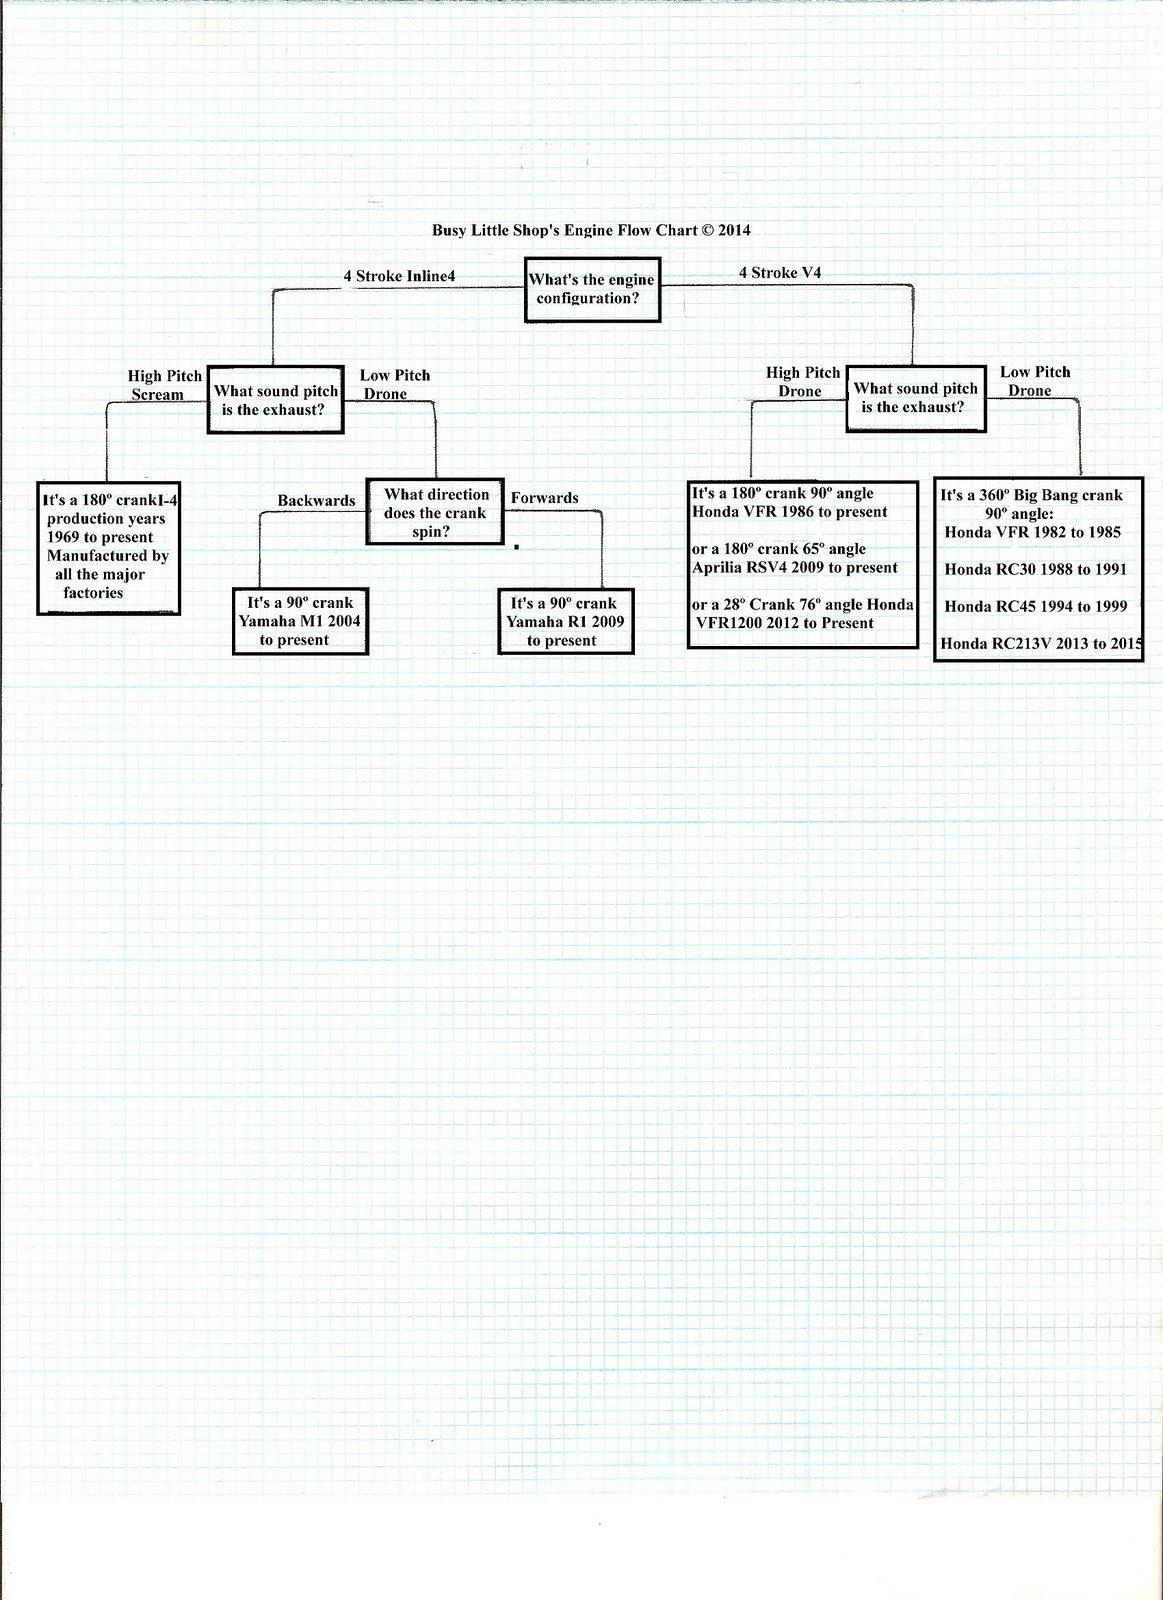 15822818501_99c824bff6_h engine flow chart bob is the oil guy